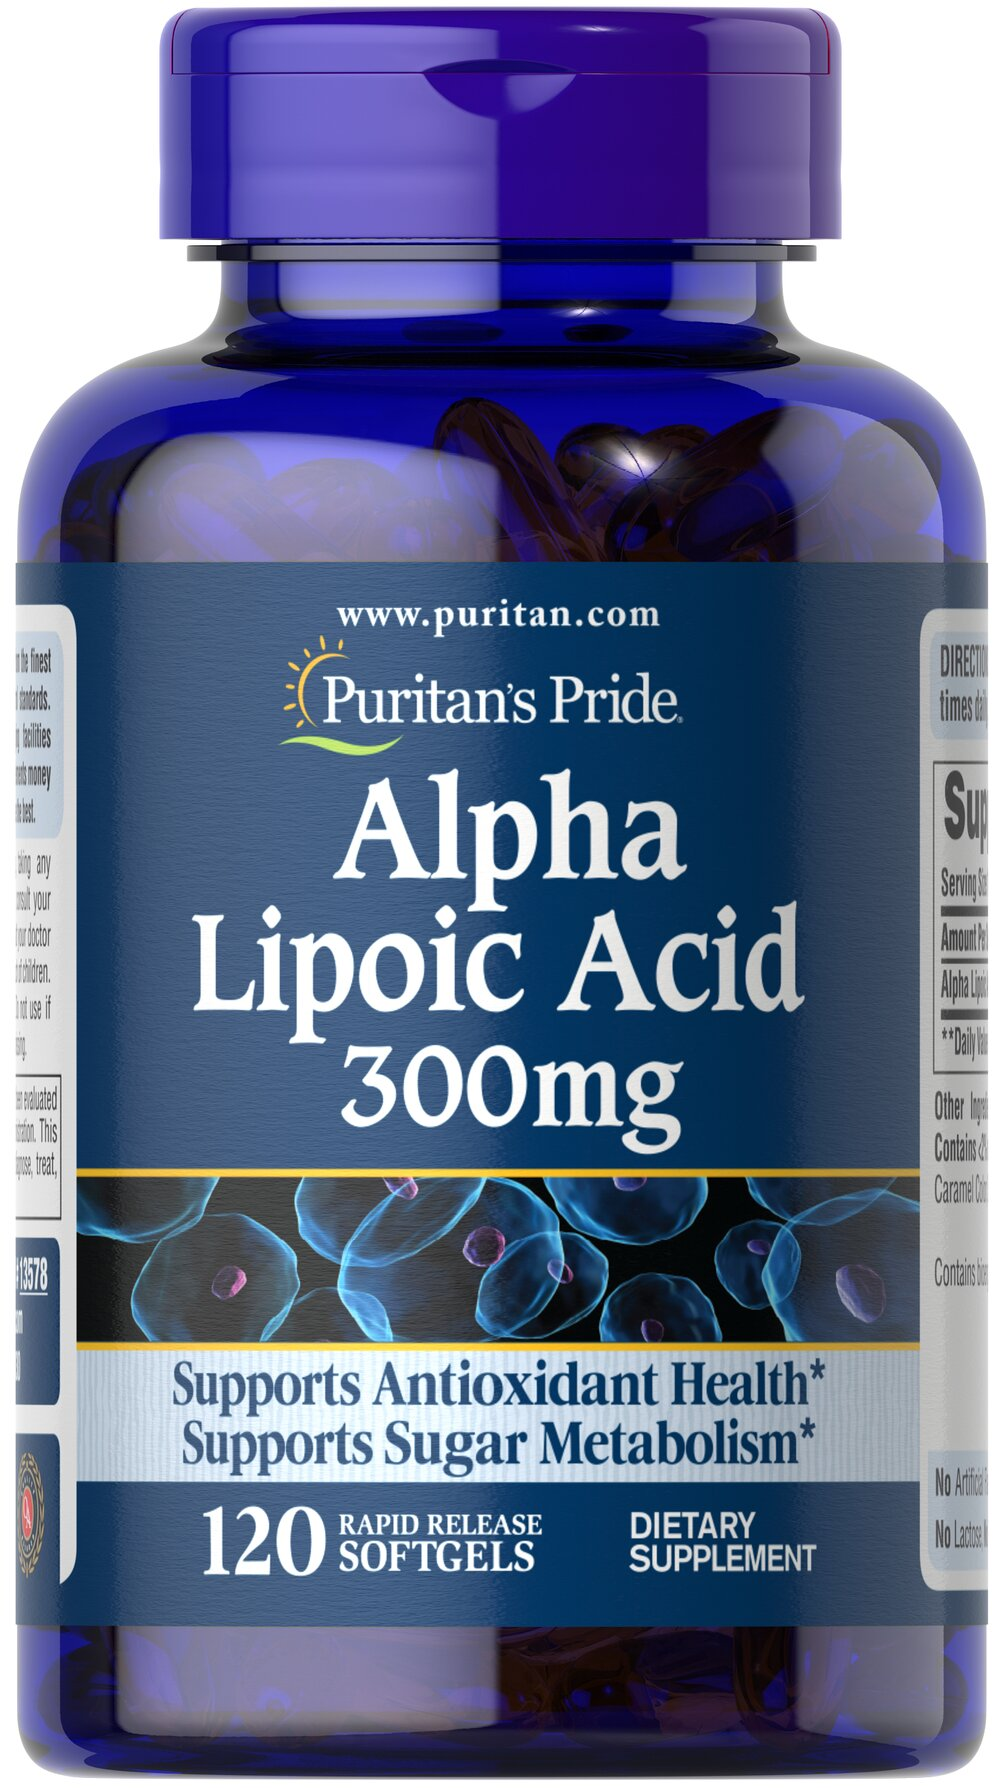 "Alpha Lipoic Acid 300 mg <p>Alpha Lipoic Acid (ALA) helps metabolize sugar, especially in muscles, where it promotes energy.**</p><p>ALA is also beneficial for liver health, and helps to revitalize the underlying structure of the skin so it can look healthier and more radiant.**</p><p> ALA is often called the ""universal antioxidant"" for its ability to help neutralize cell-damaging free radicals.** </p> 120 Softgels 300 mg $21.59"